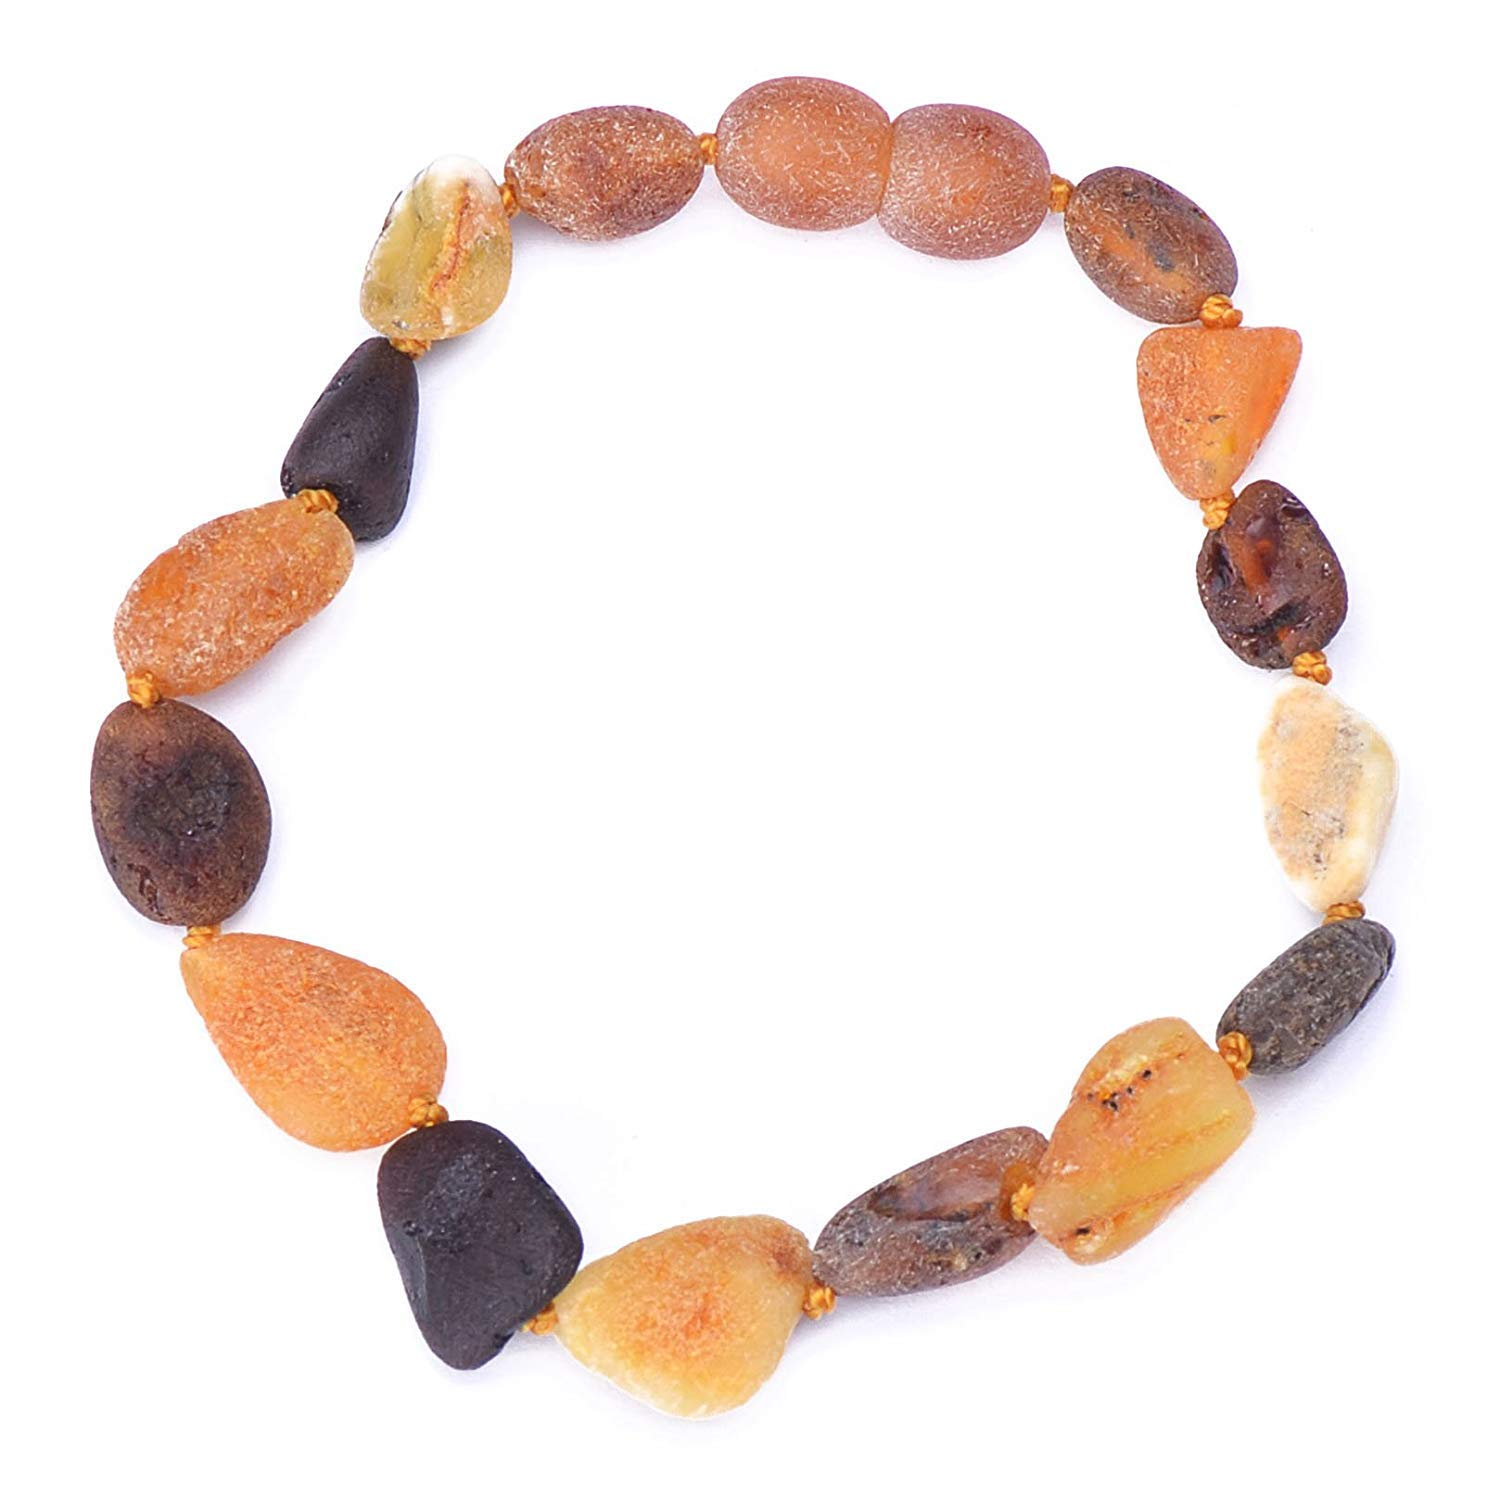 Raw Baltic Amber Bracelet for Adults - Authentic Certified Baltic Amber - Knotted Between Beads - with Screw Clasp - Genuine Baltic Amber (8.6 Inches, Mixed3) by Genuine Amber